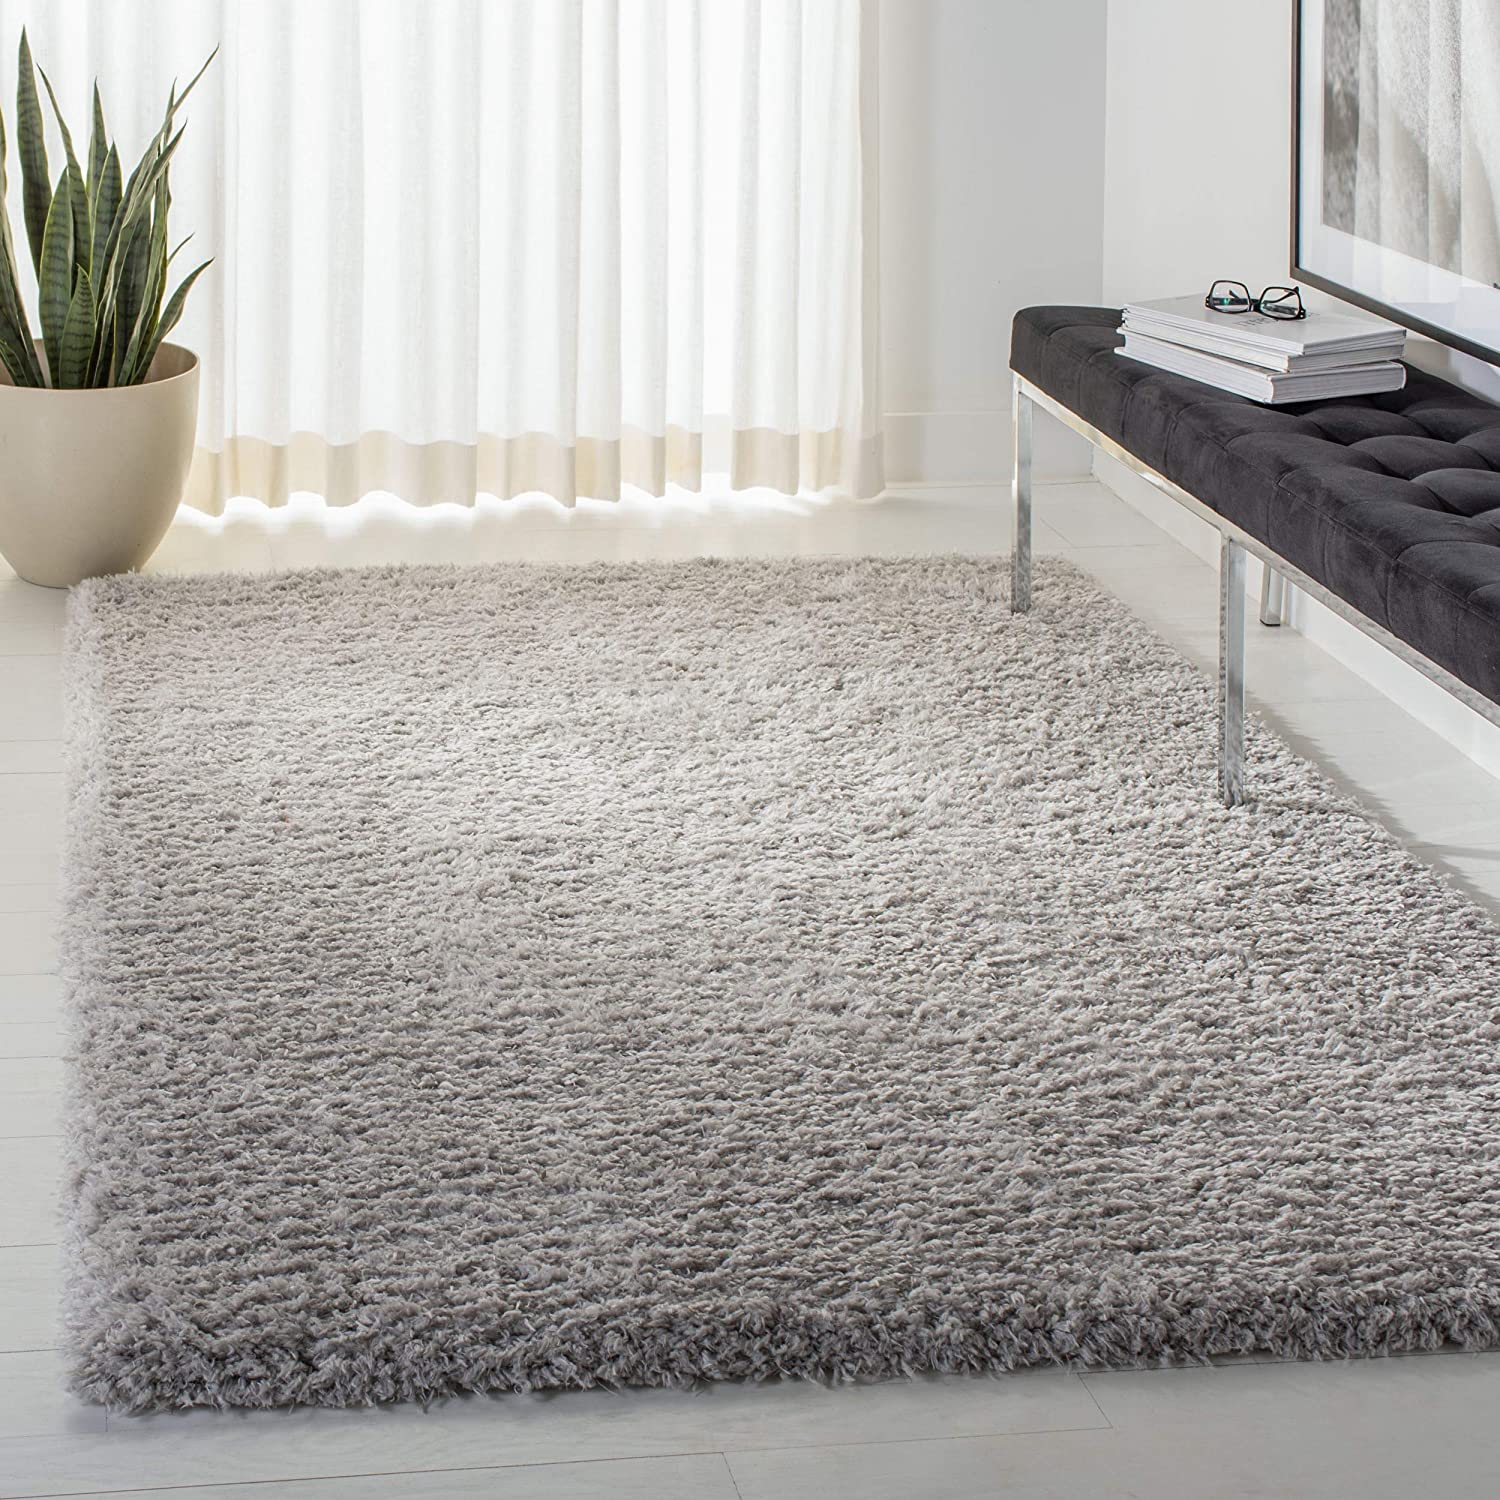 Safavieh Flokati Collection FLK310F Store 2.3-inch 9' Area Kansas City Mall Thick Rug